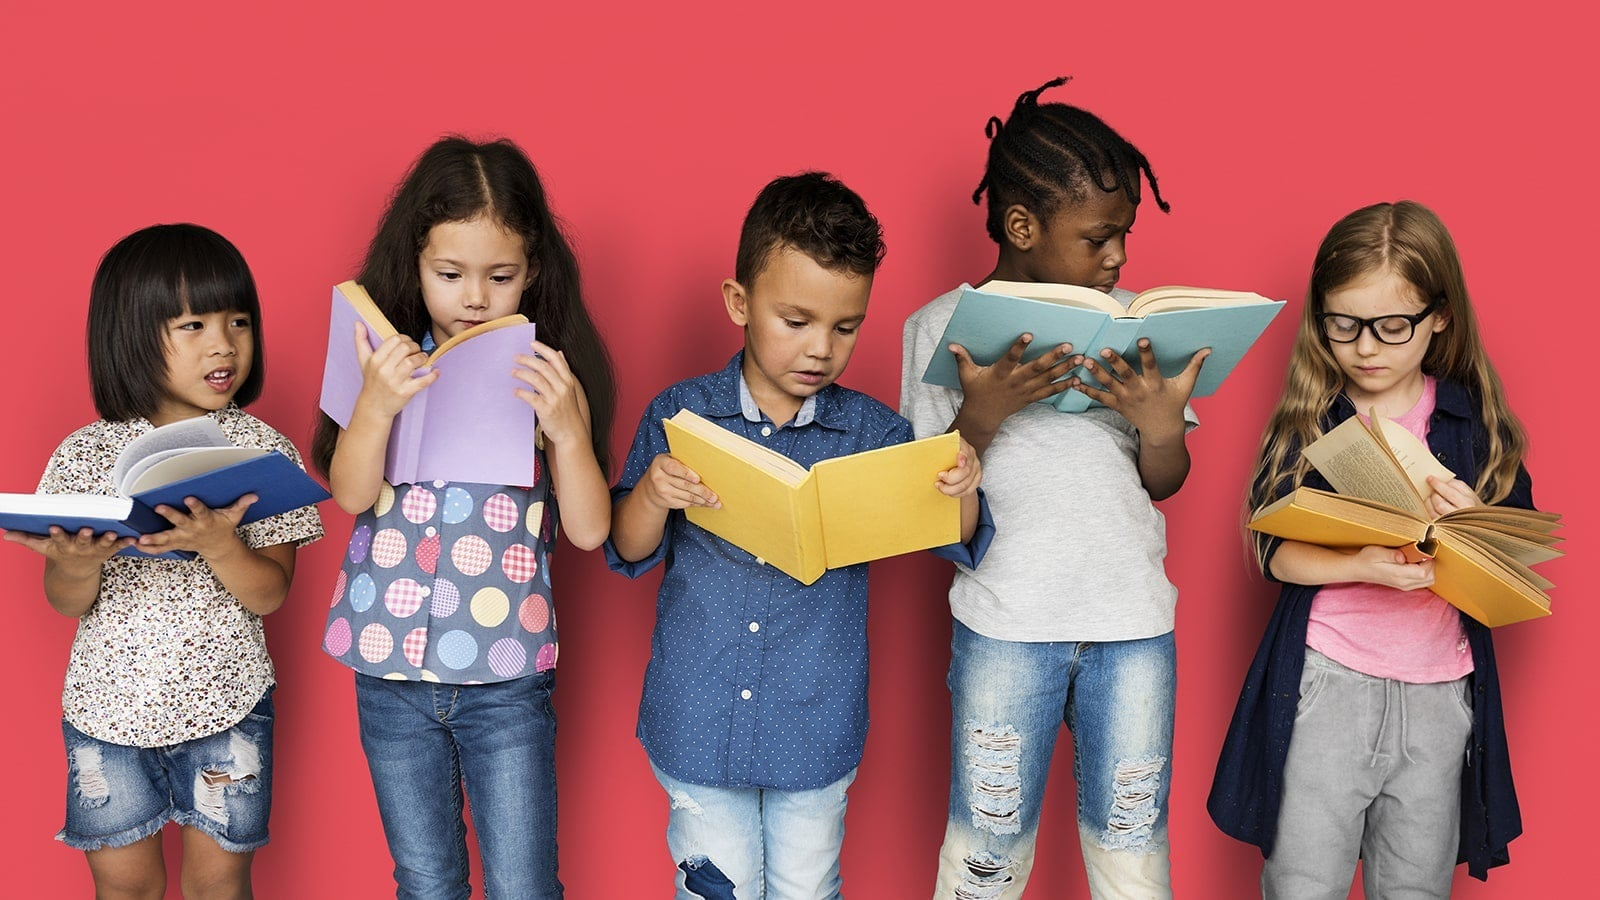 Two young girls and three young boys stood in a line against a pink wall looking at books